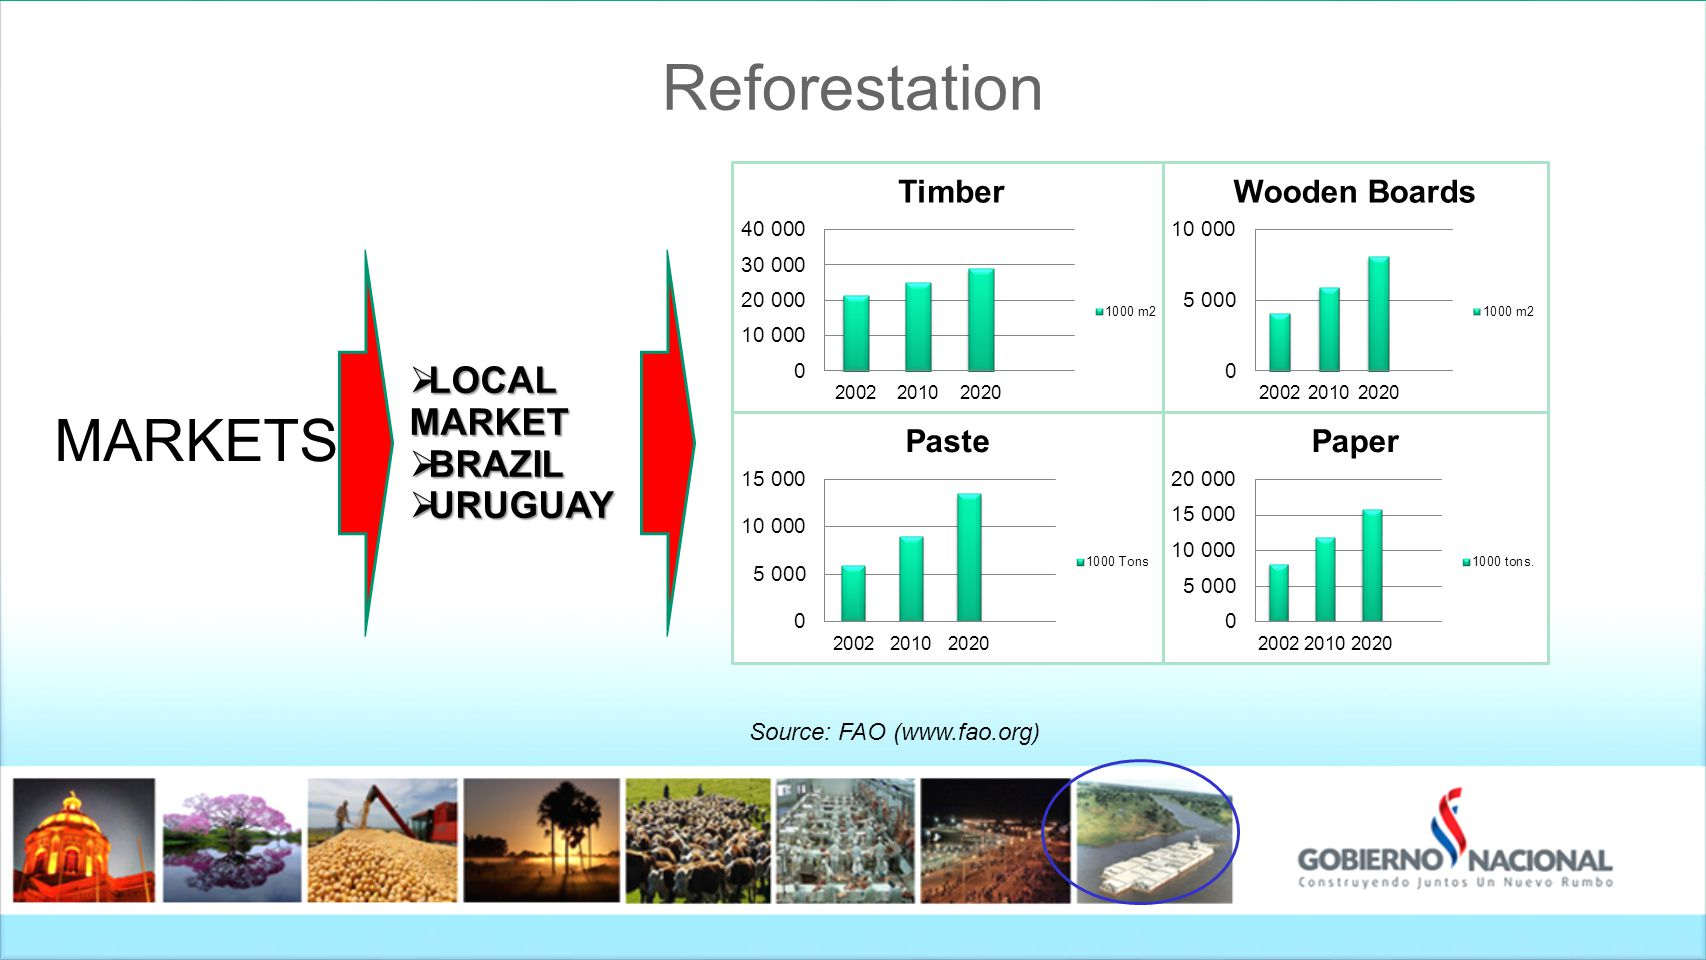 Reforestation  LOCAL MARKET  BRAZIL  URUGUAY MARKETS Source: FAO (www.fao.org)